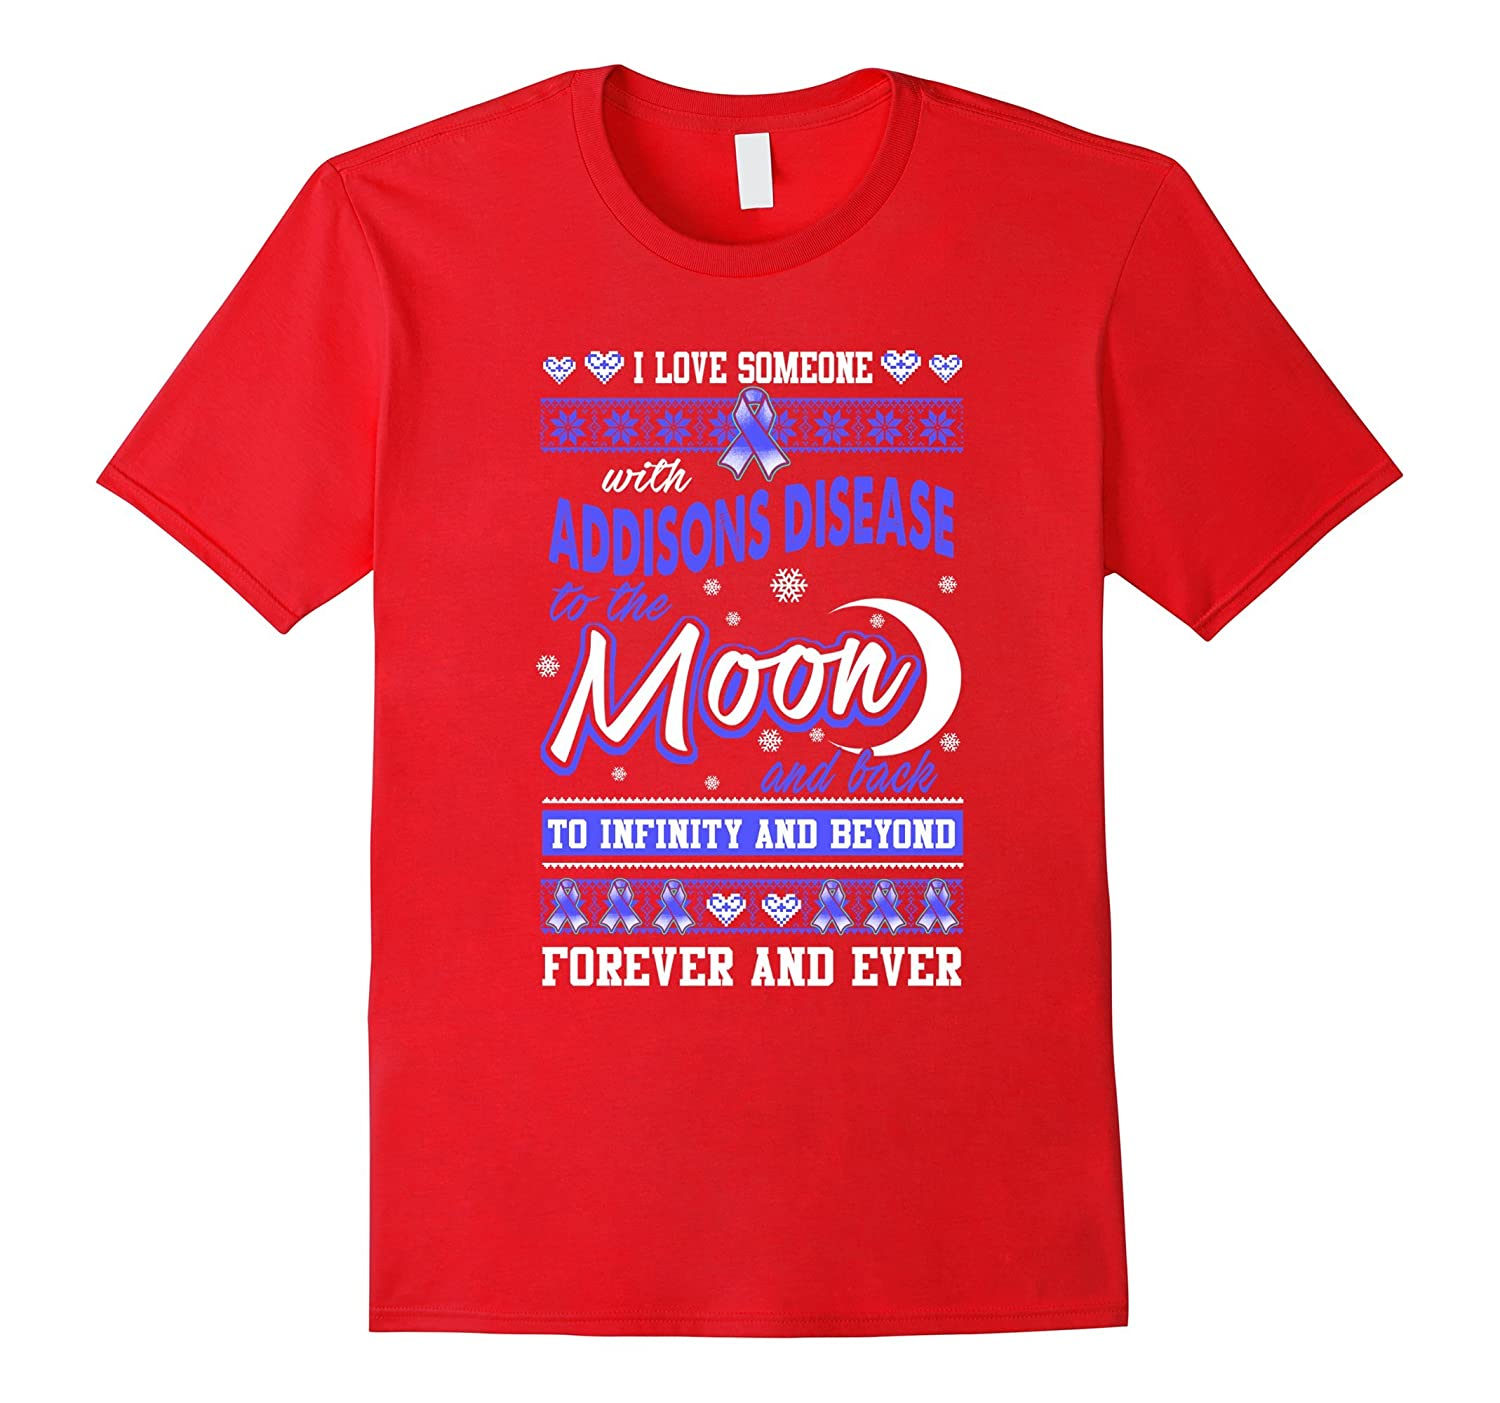 Addisons Disease Christmas T Shirt-BN